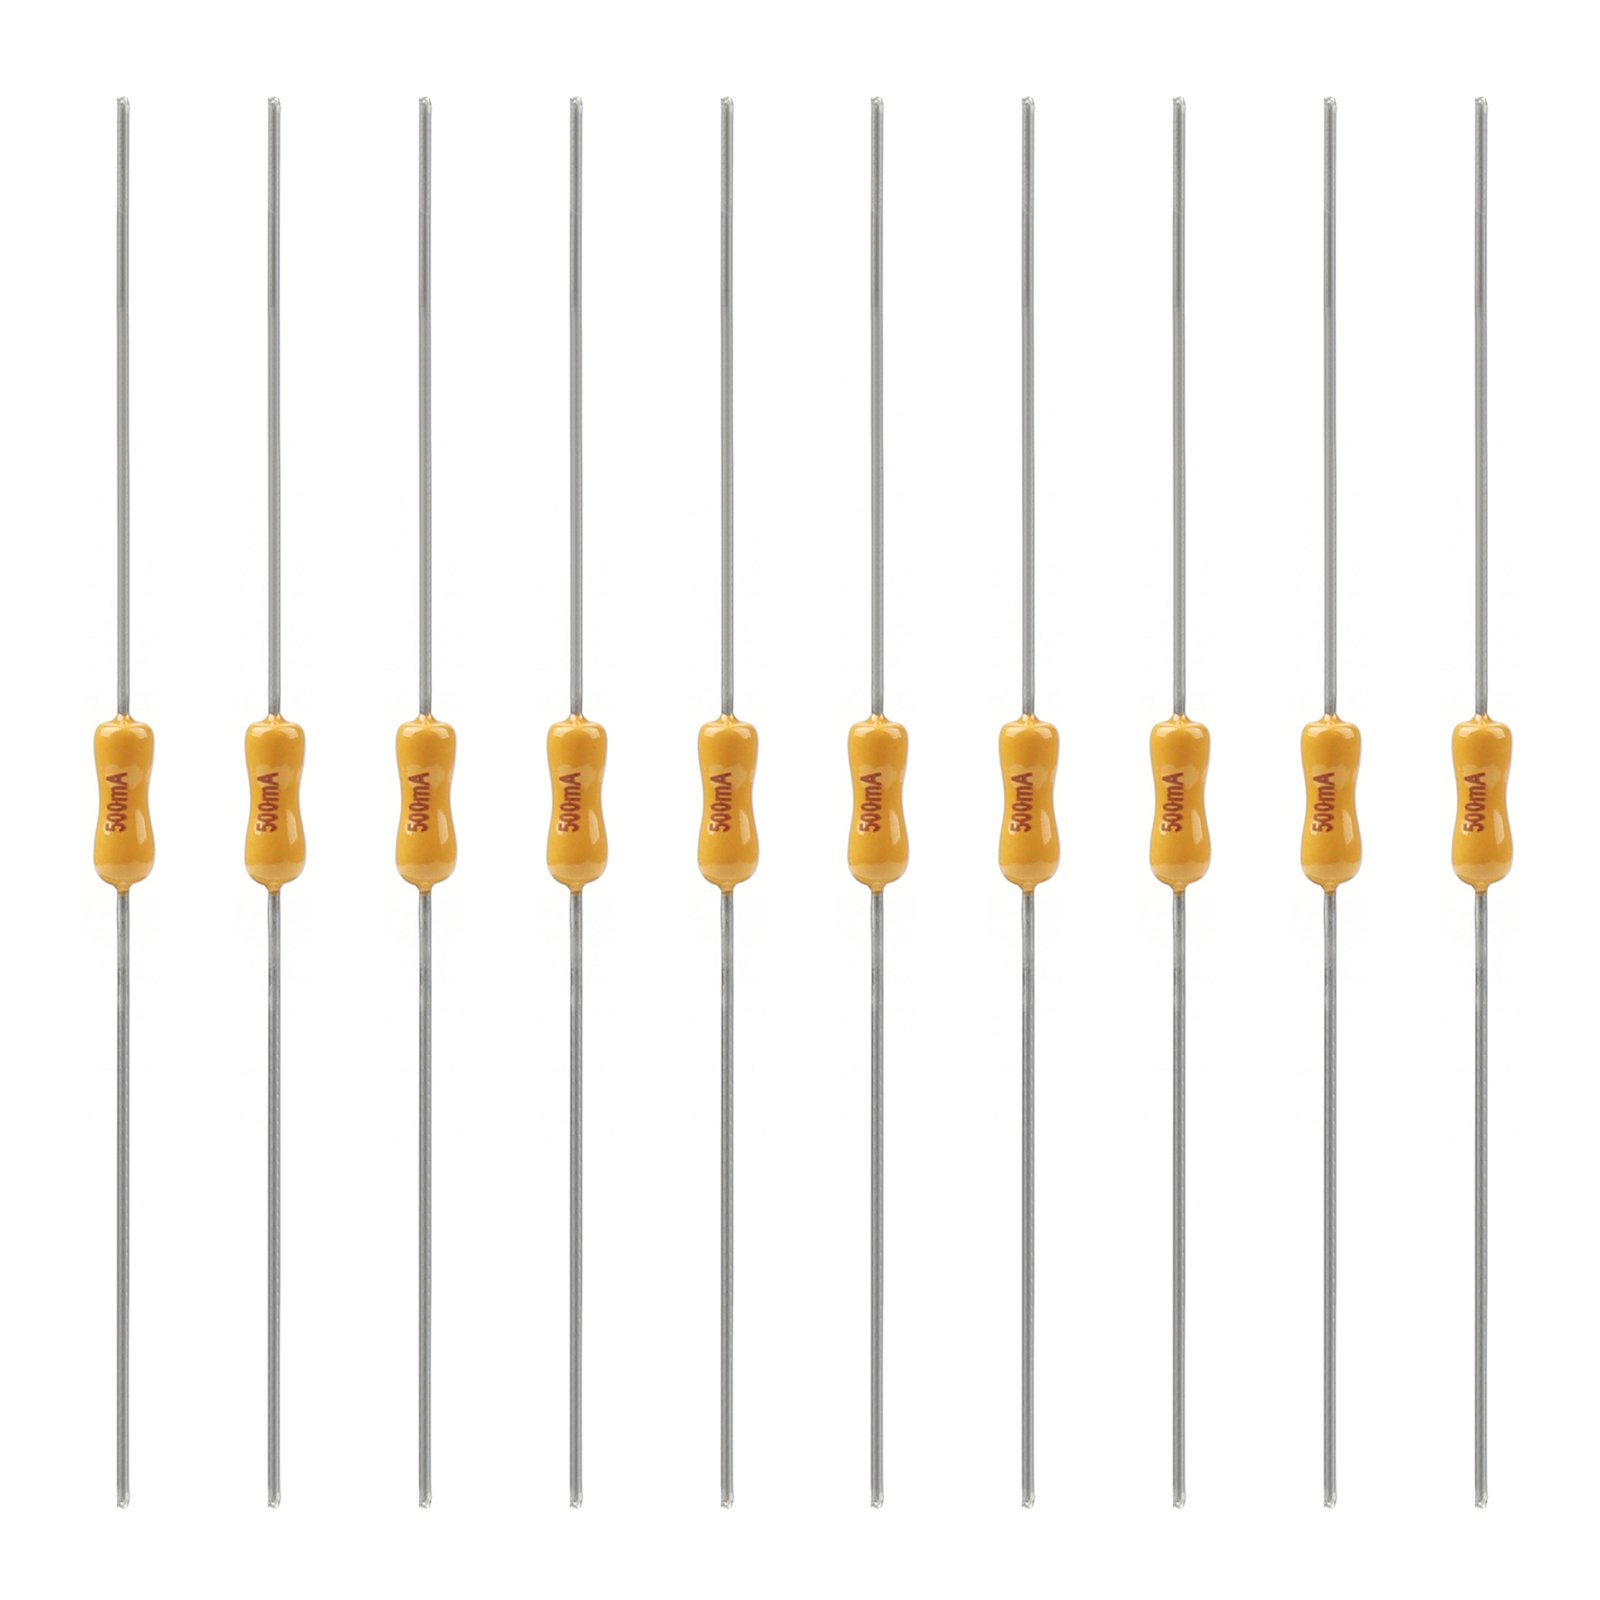 Areyourshop 10Pcs Yellow Ceramic Resistor Fuse Time-Lag Metal Axial Lead Fuse 2.4x7mm 0.5A